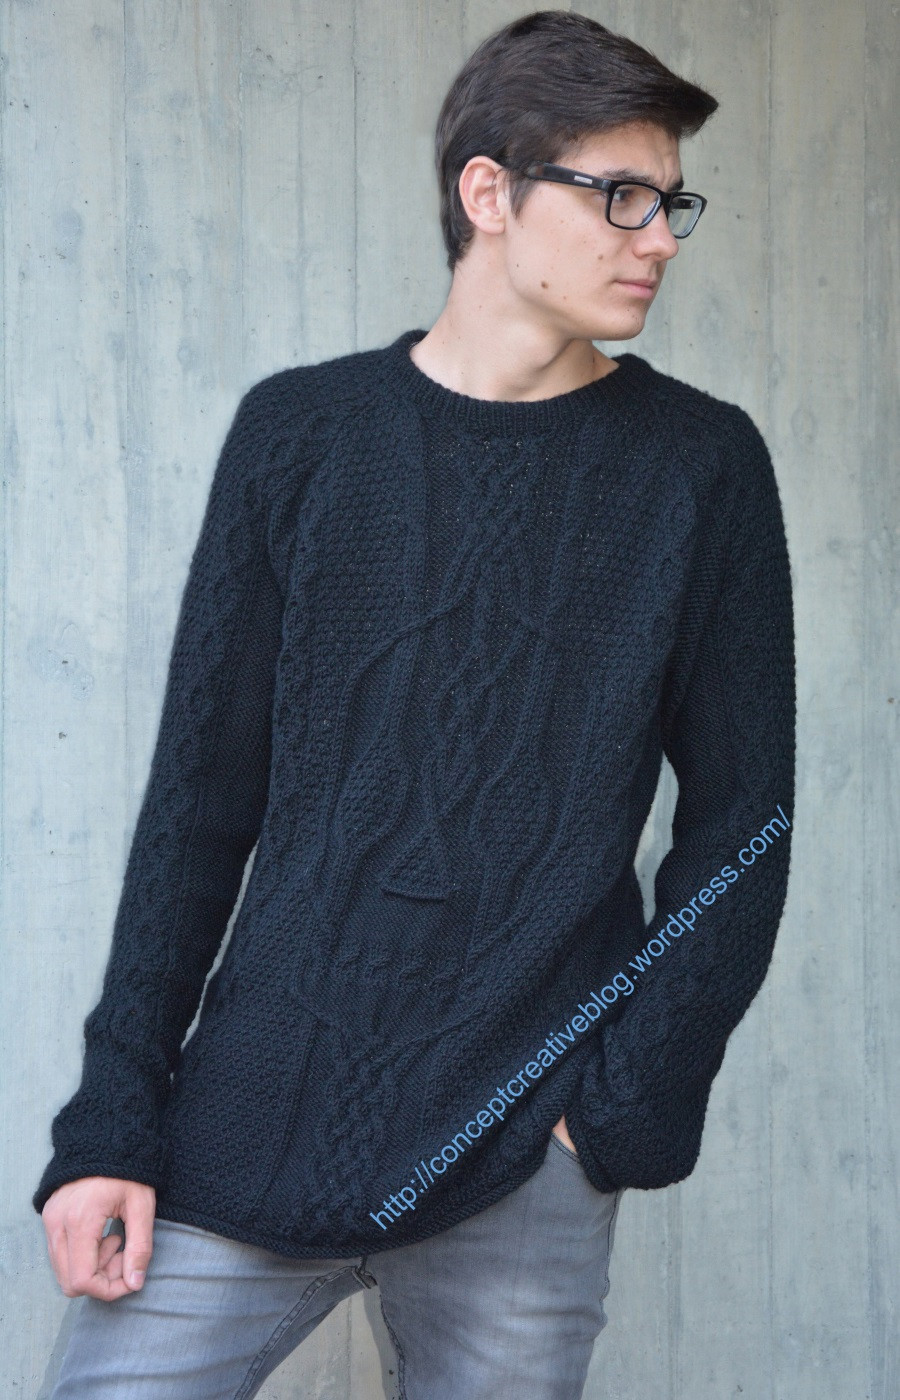 Elegant Knit Cable Pullover with Skull Pattern Free Diagram Cable Knit Sweater Pattern Of Fresh Zip Front Cardigan Knit Pattern Bronze Cardigan Cable Knit Sweater Pattern